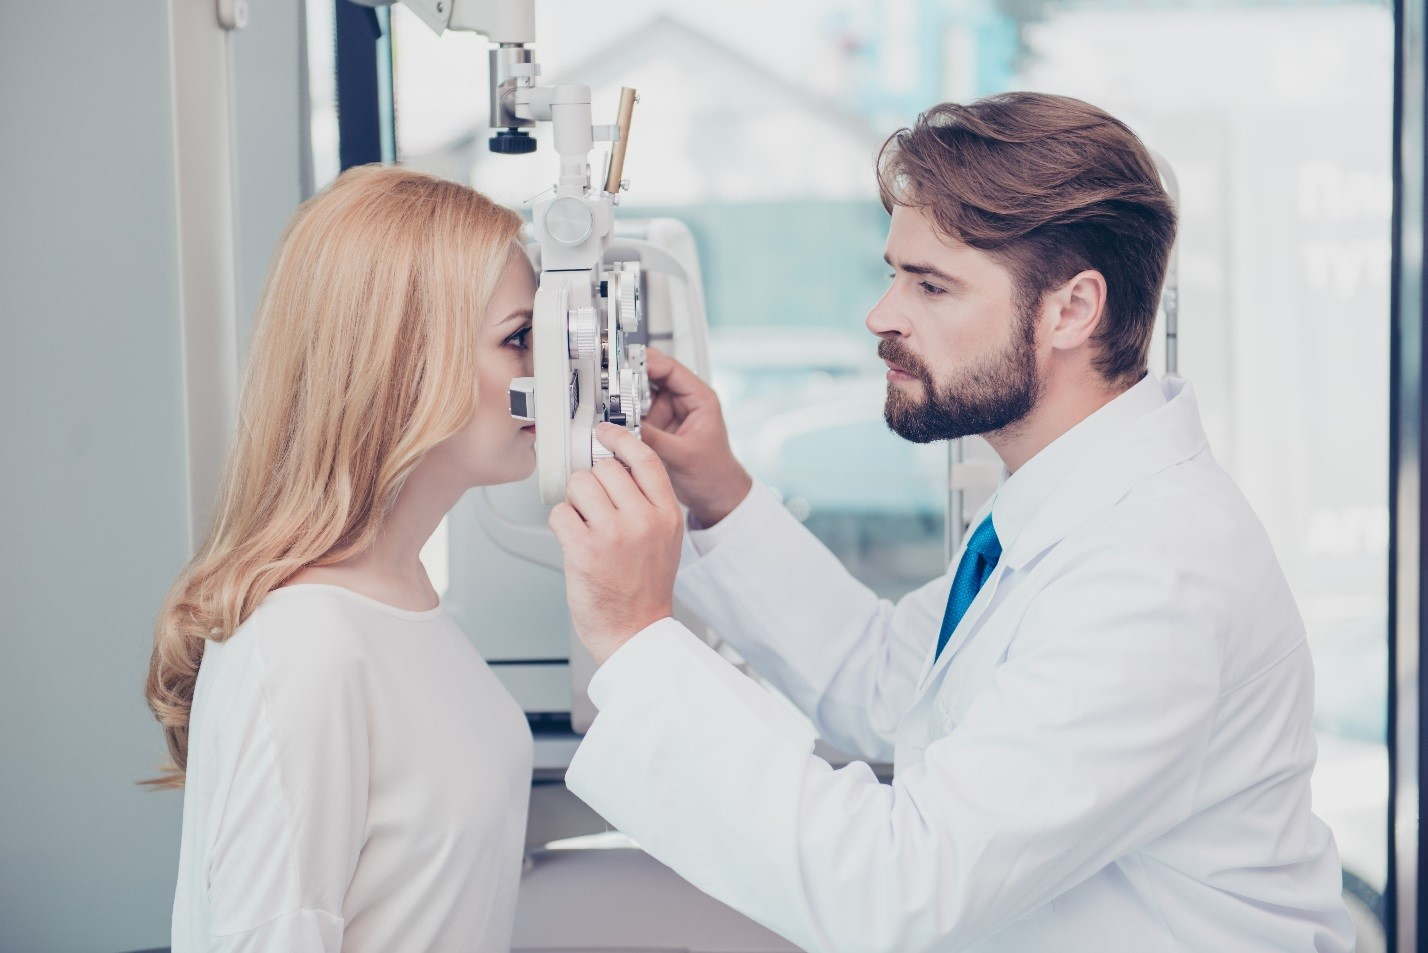 HOW A VISIT TO YOUR EYE DOCTOR CAN BENEFIT YOUR OVERALL HEALTH